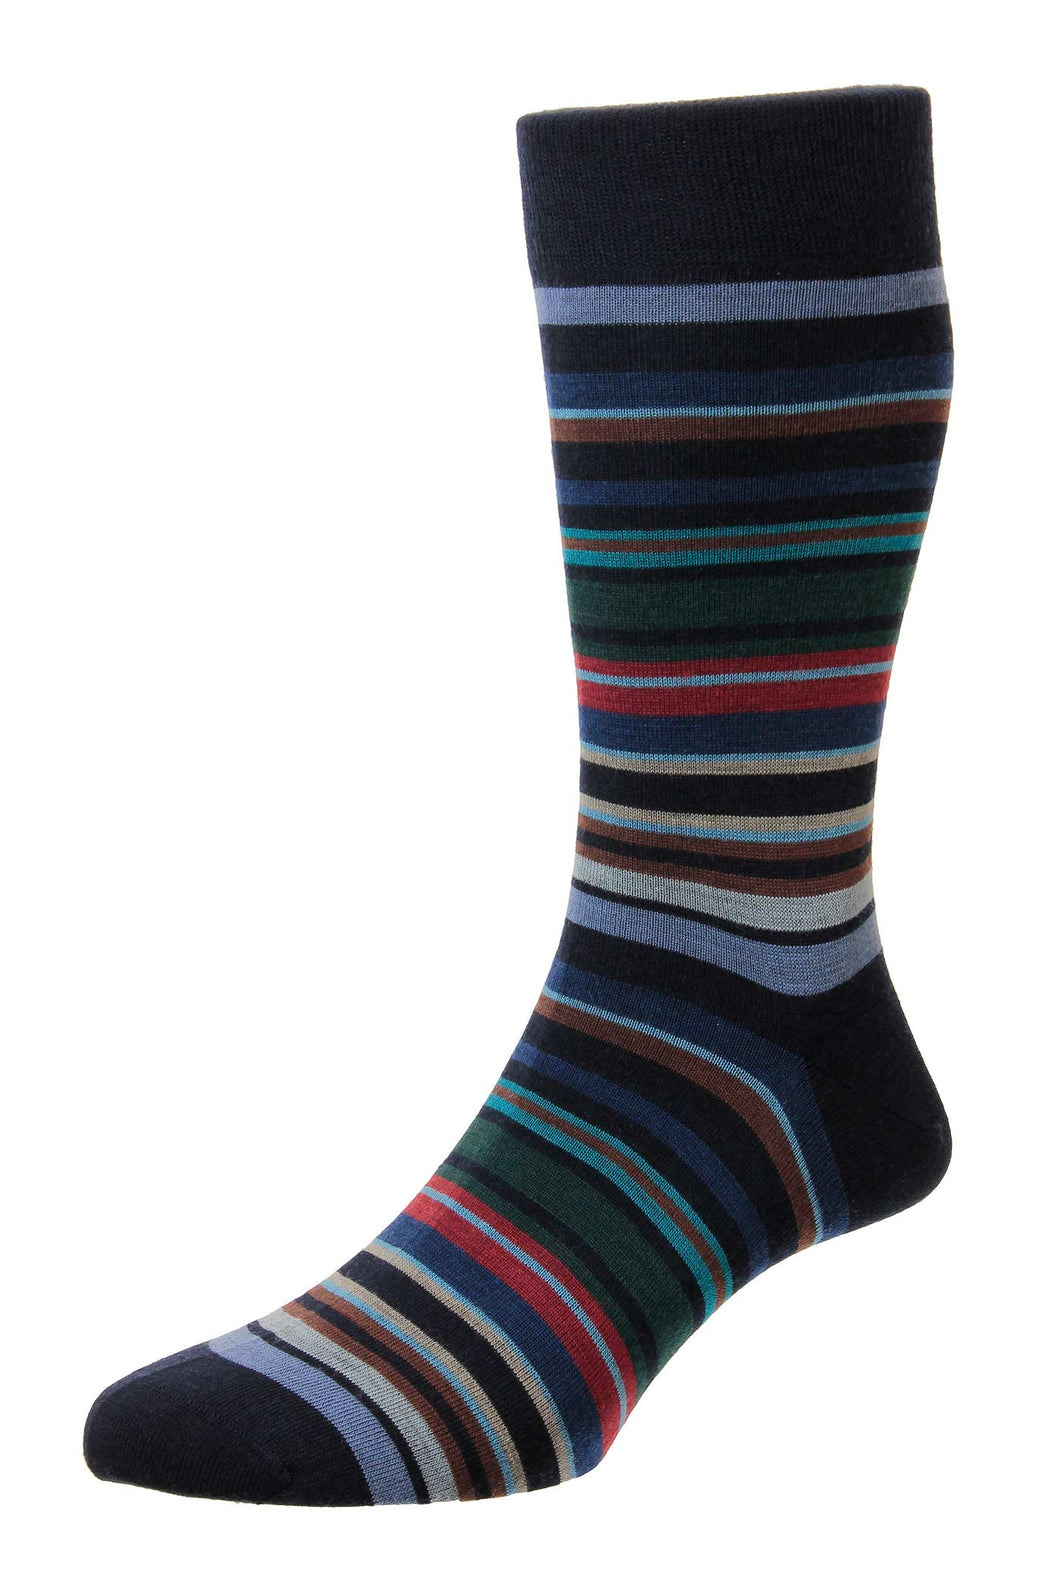 Pantherella All Over Stripe Sock - Navy